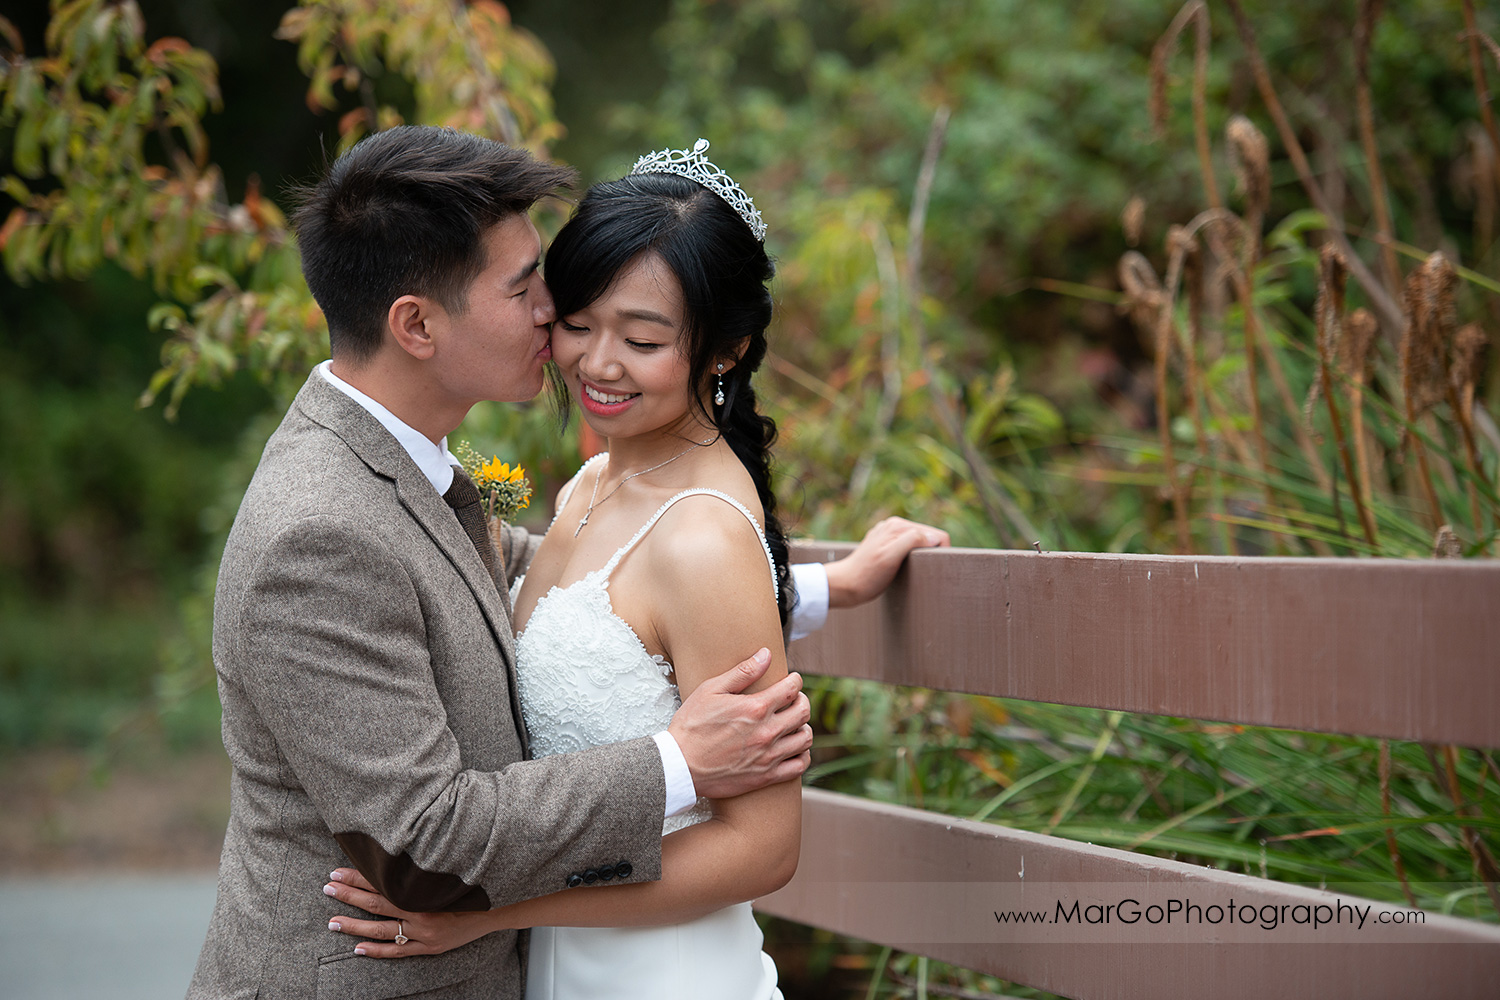 groom kissing bride's cheek on wooden fence at Long Branch Saloon & Farms in Half Moon Bay